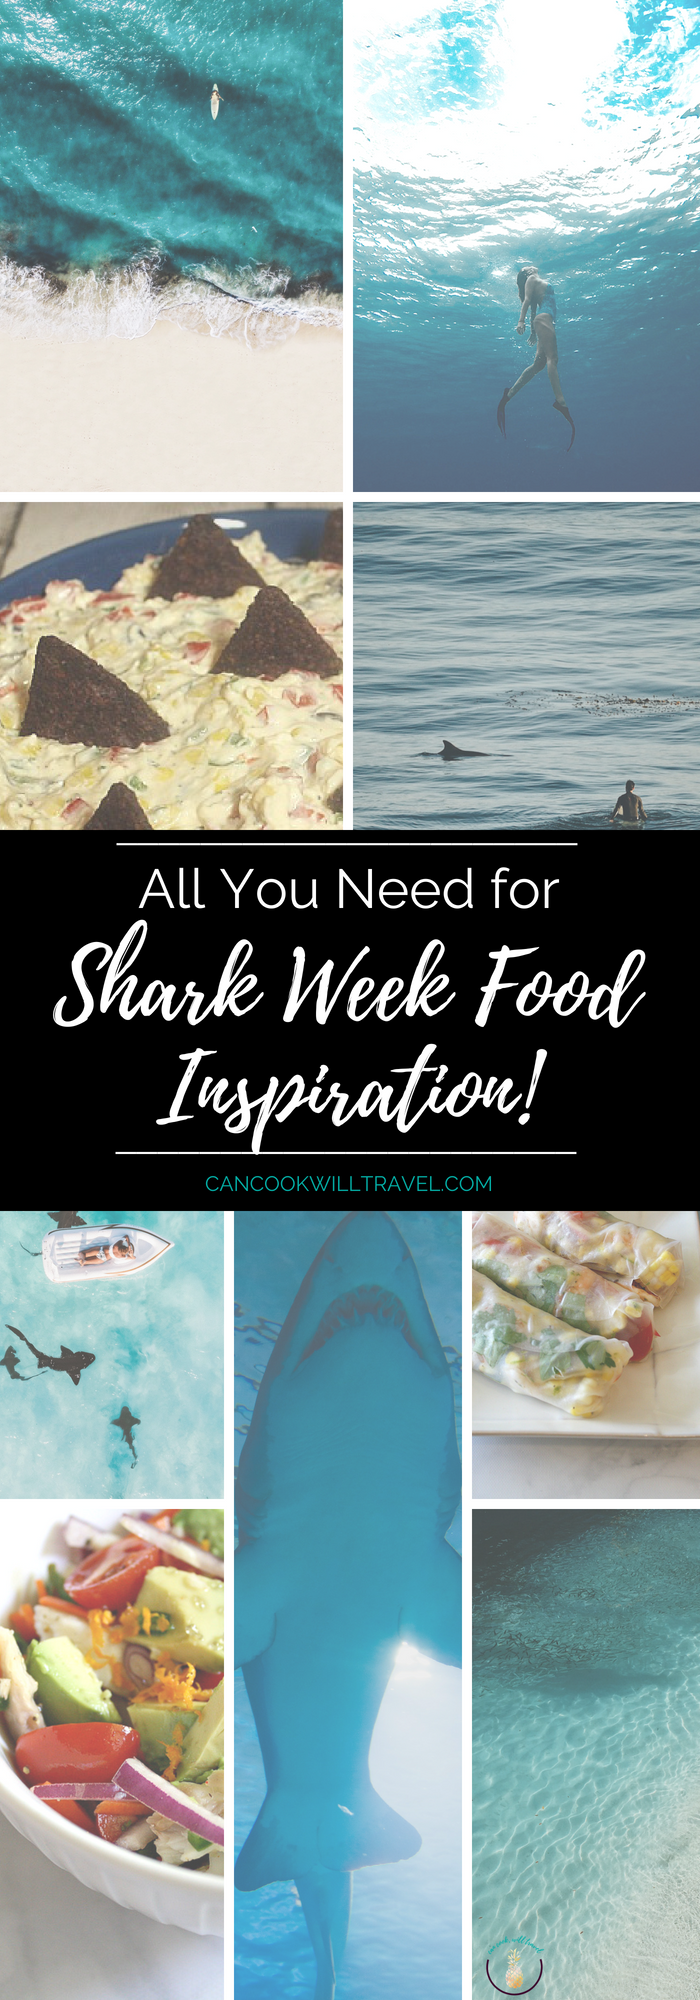 Shark Week Food Ideas_Tall